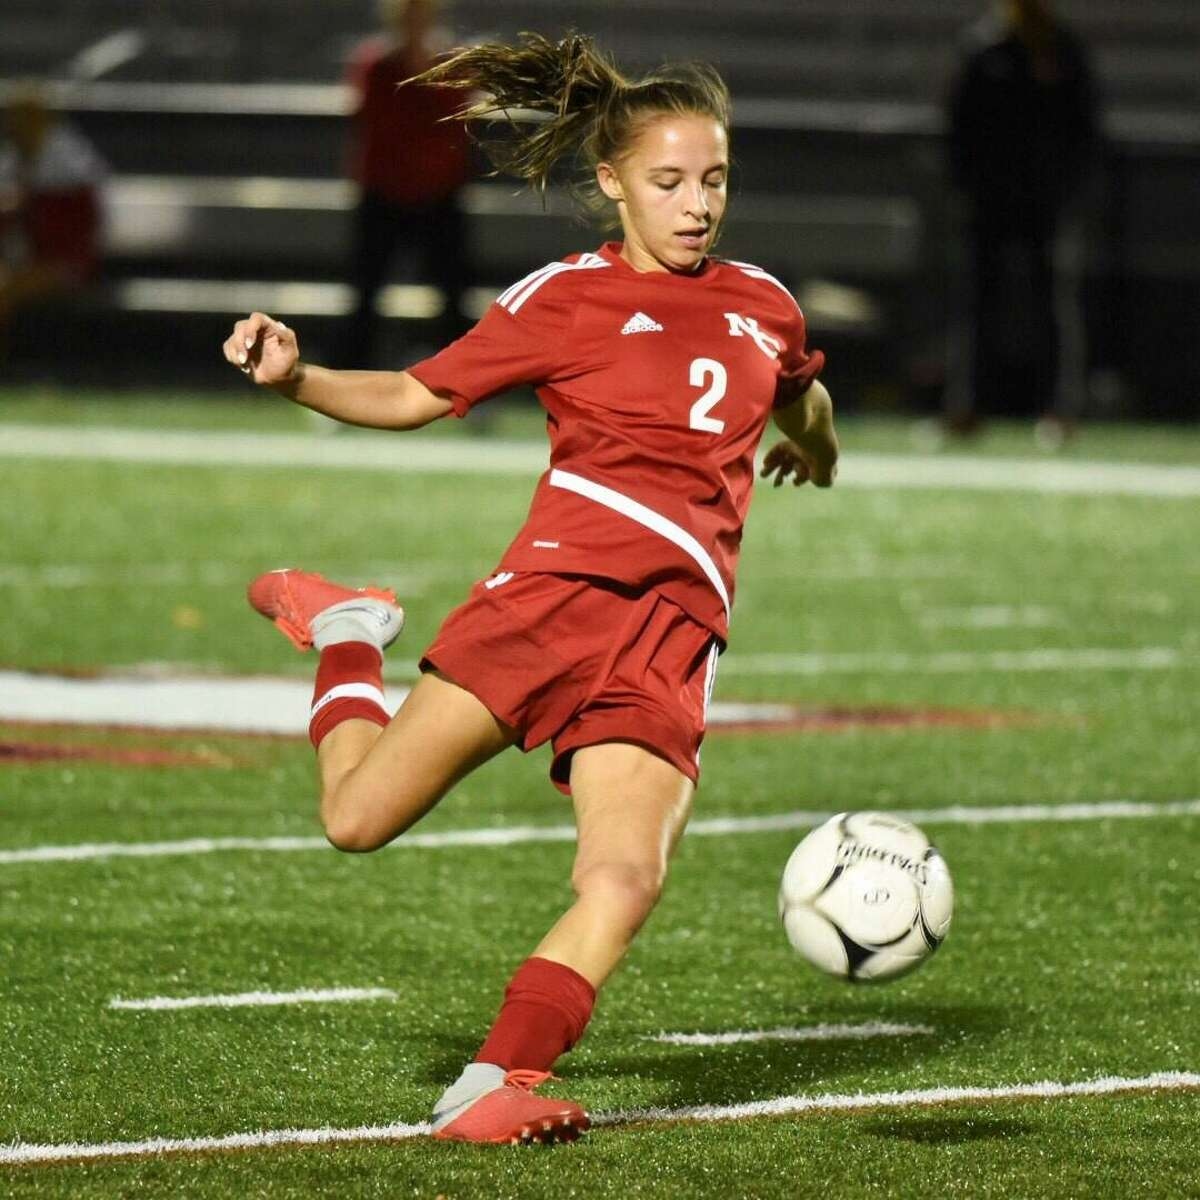 New Canaan's Sophie Potter (2) lines up a kick during Friday's game against St. Joseph at Dunning Field on Friday.